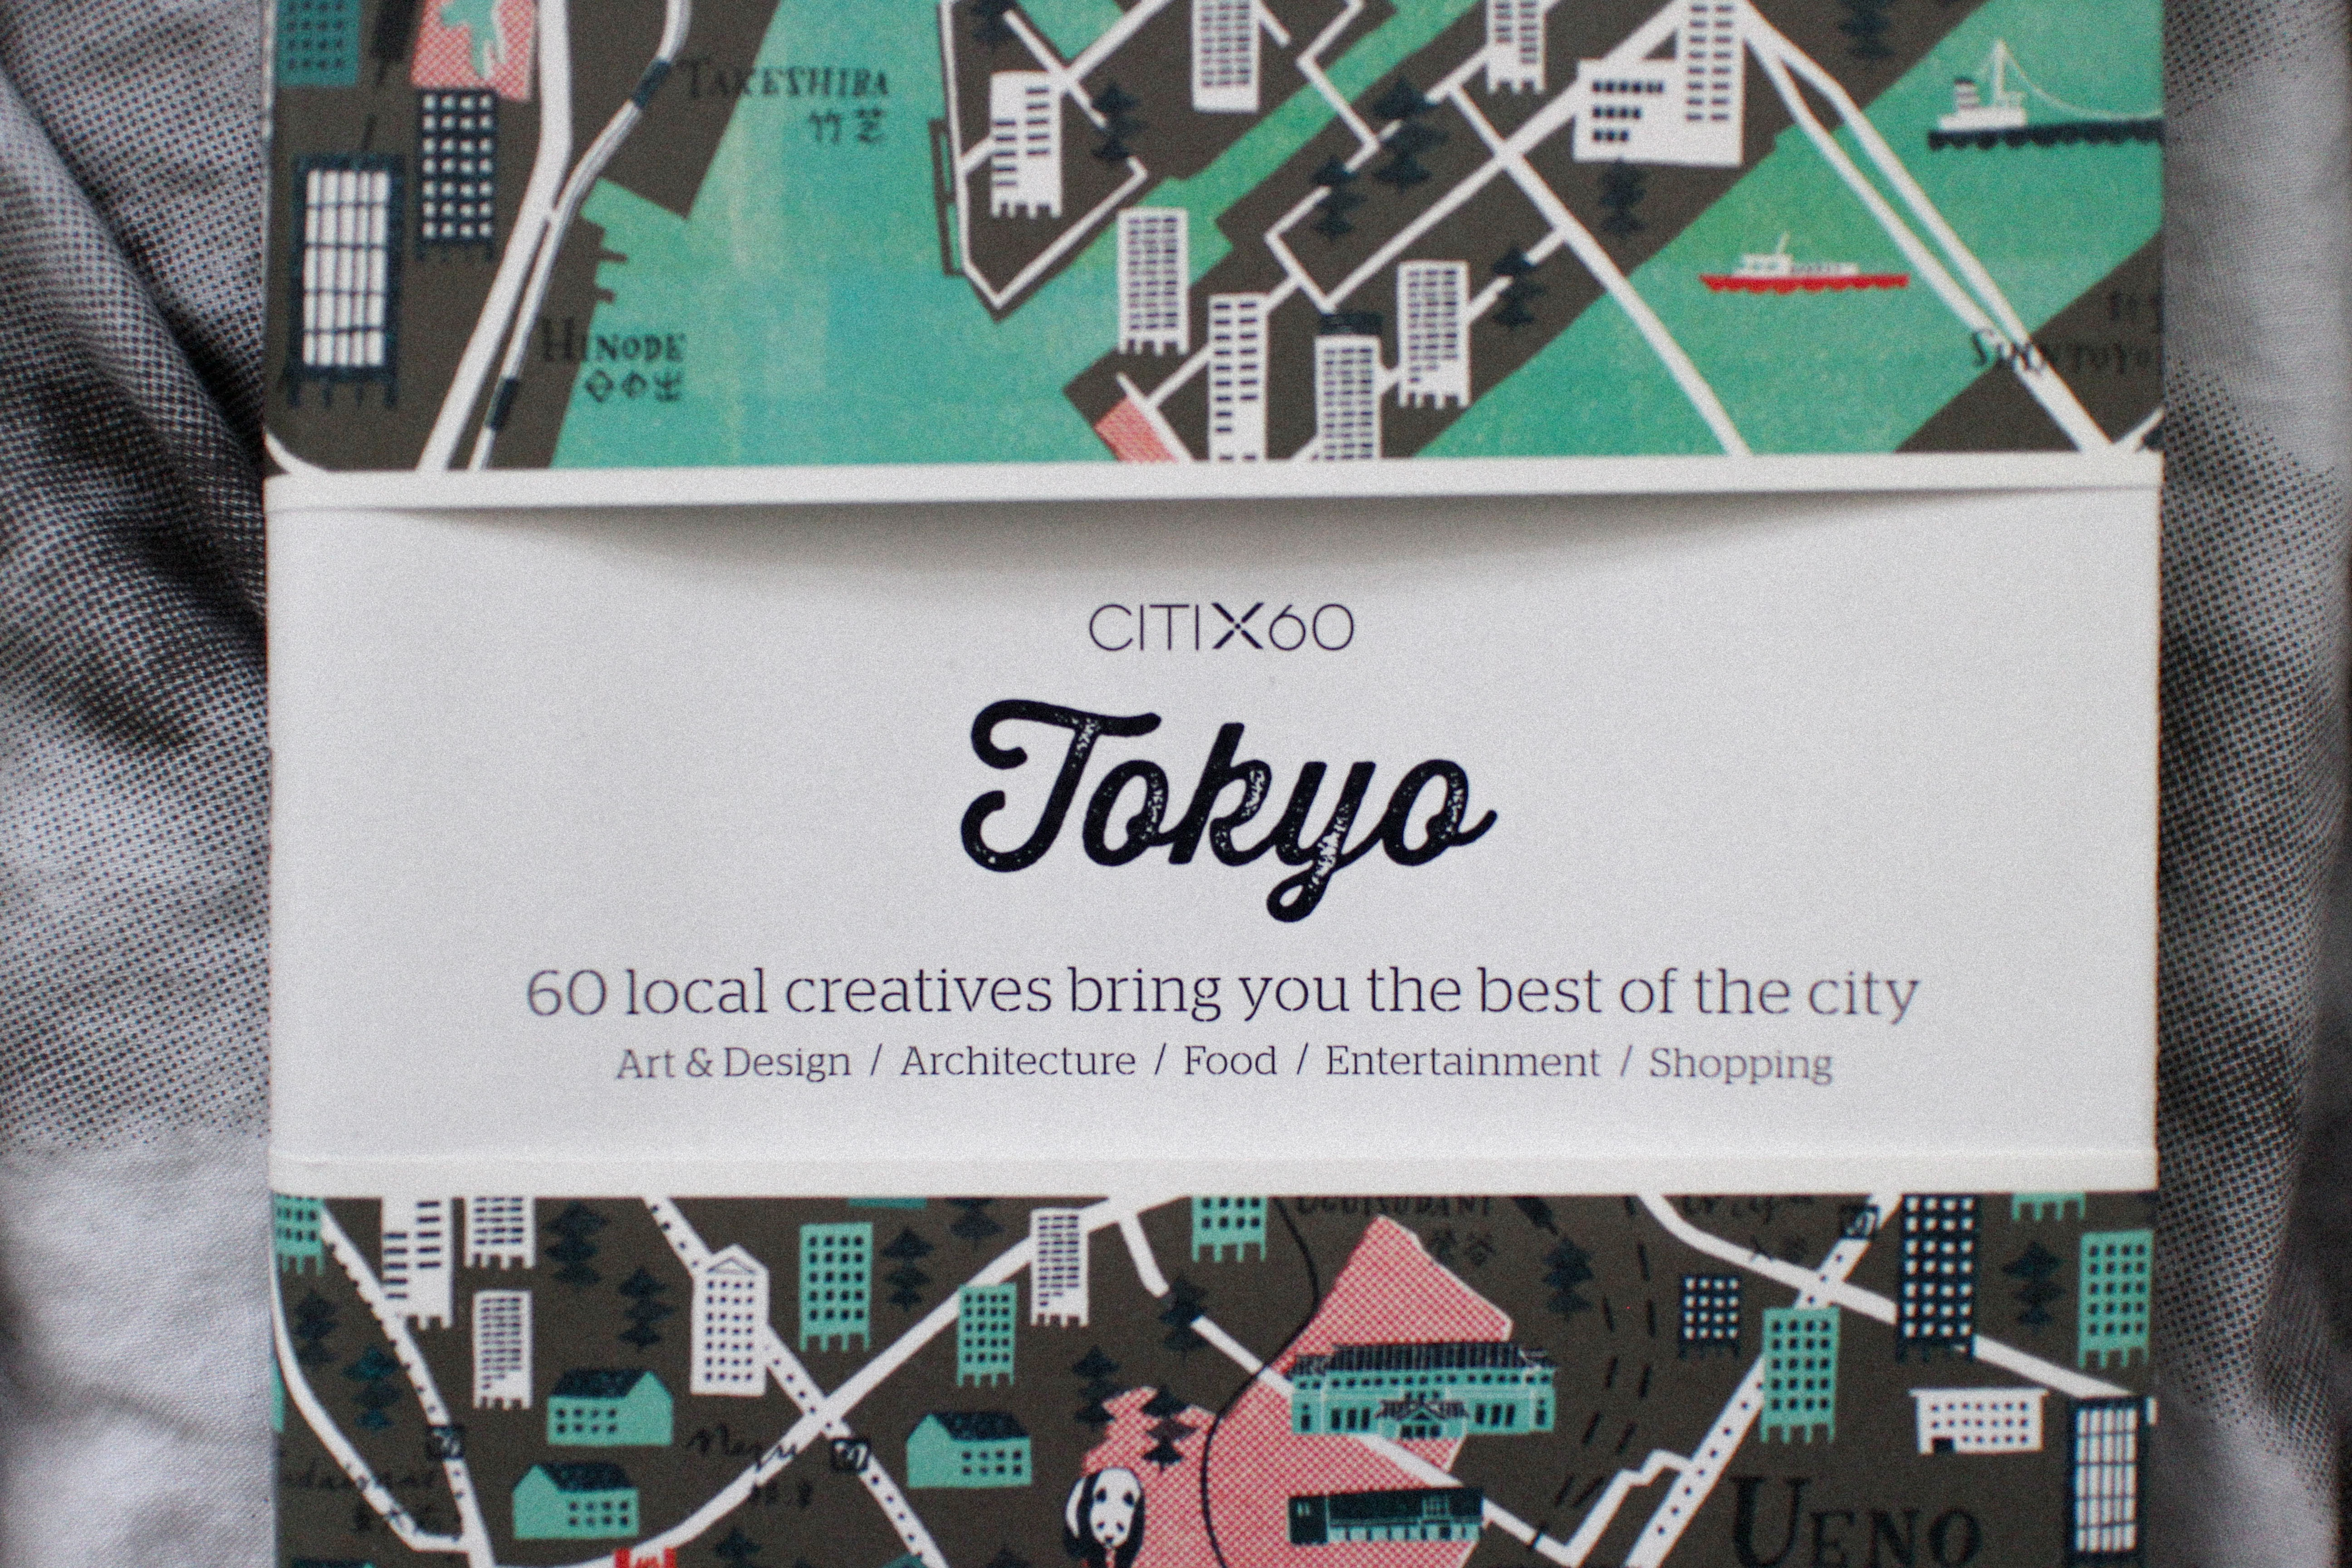 citix60_tokyo_guide